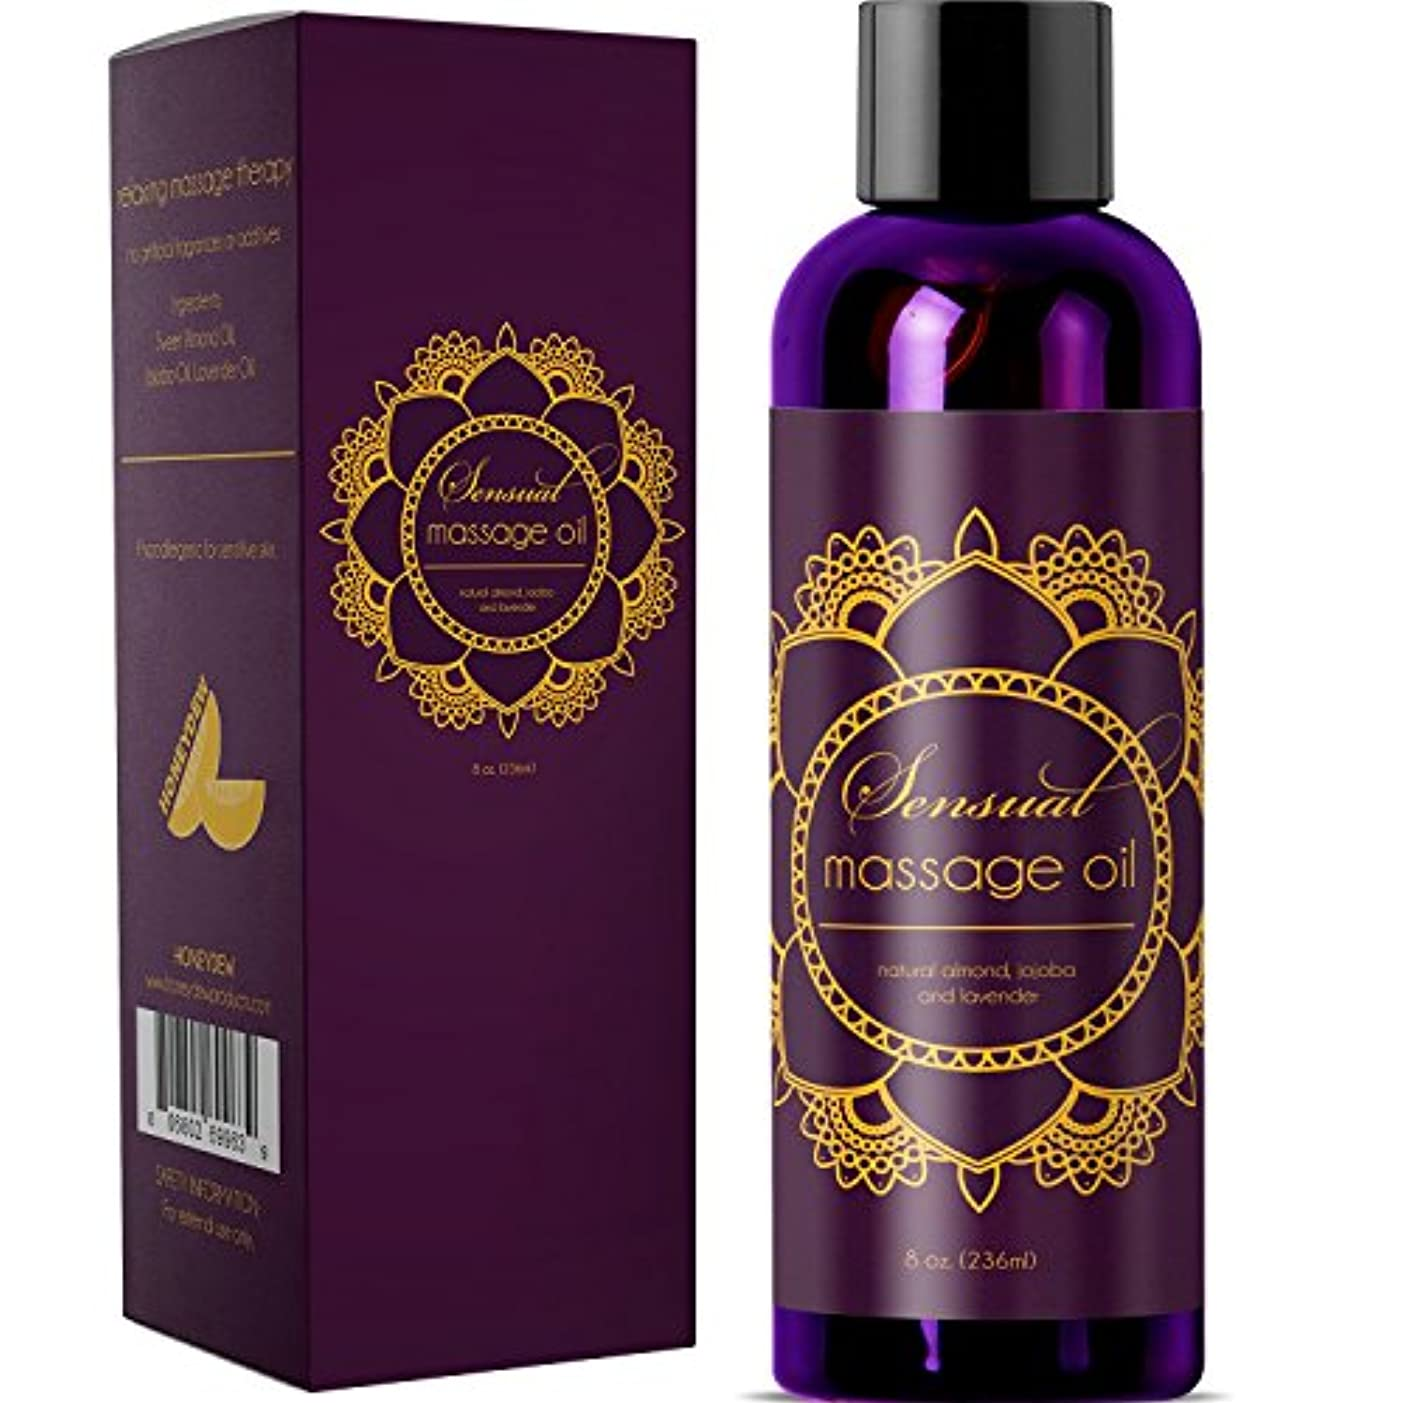 コカインのど音節Sensual Massage Oil w/ Pure Lavender Oil - Relaxing Almond & Jojoba Oil - Women & Men - 100% Natural Hypoallergenic...